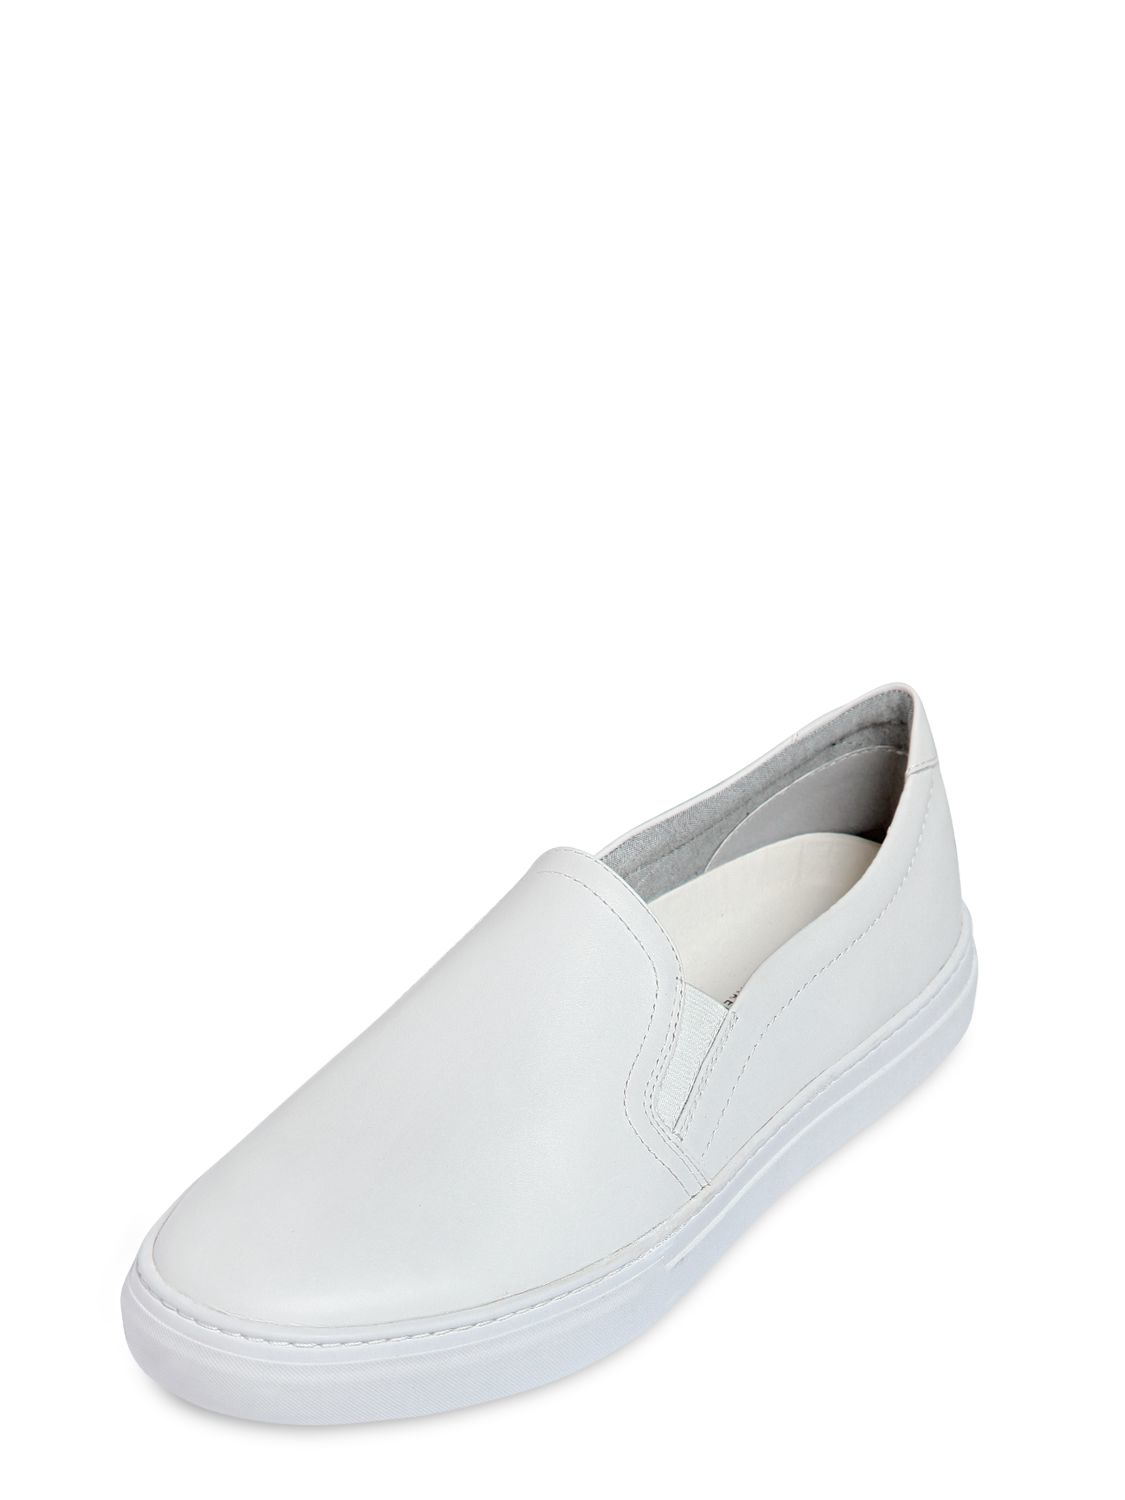 vagabond leather slip on sneakers in white for lyst